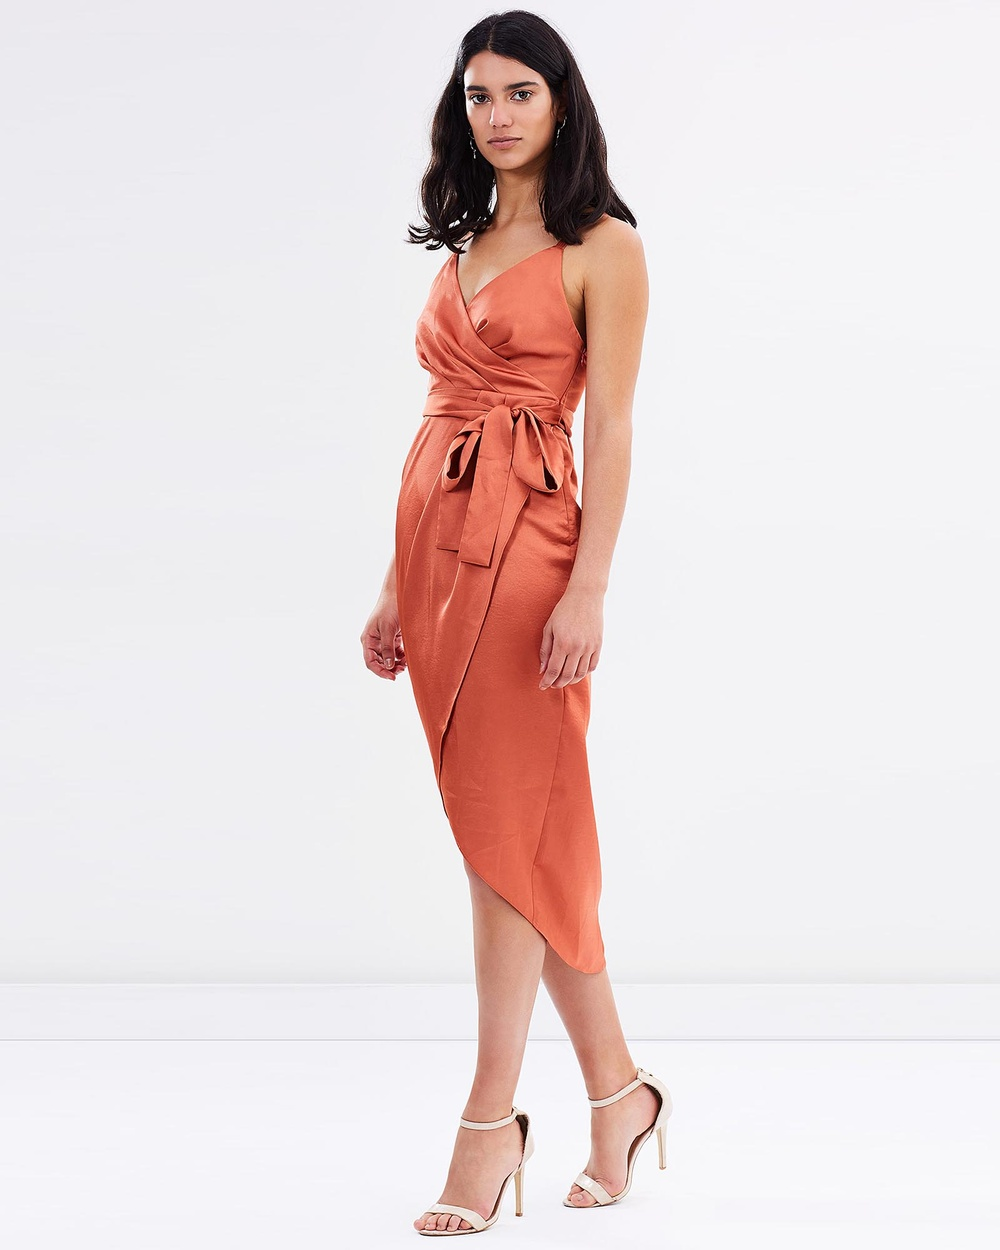 Friend of Audrey Veronika Wrap Dress Dresses Rust Veronika Wrap Dress